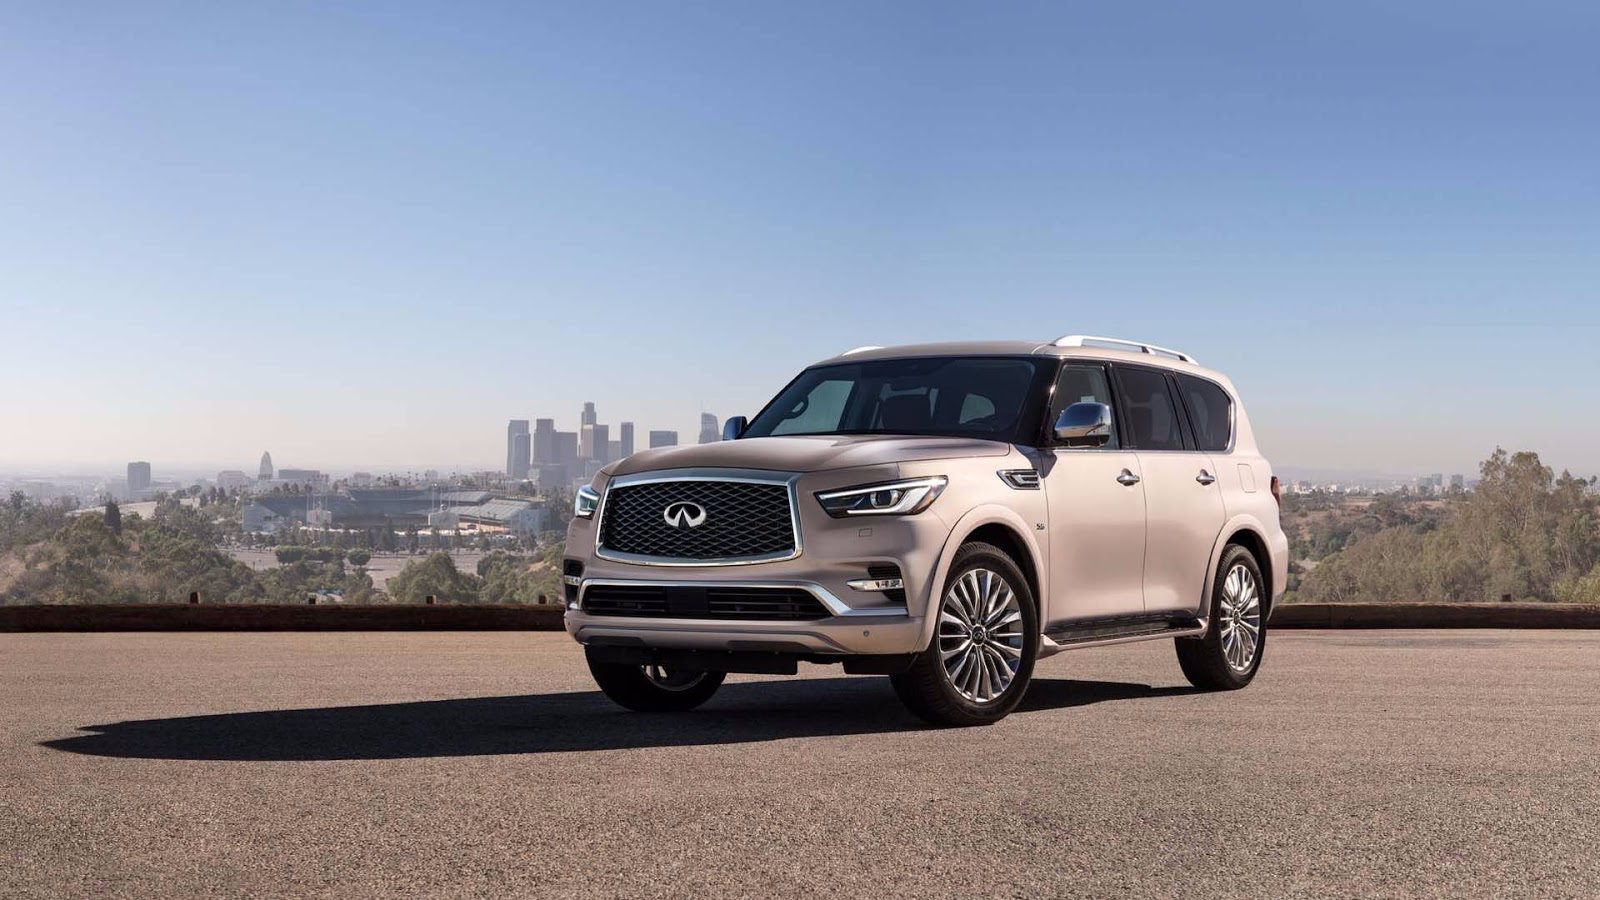 2018 Infiniti Qx80 Facelift Retails At 64 750 Autoevolution